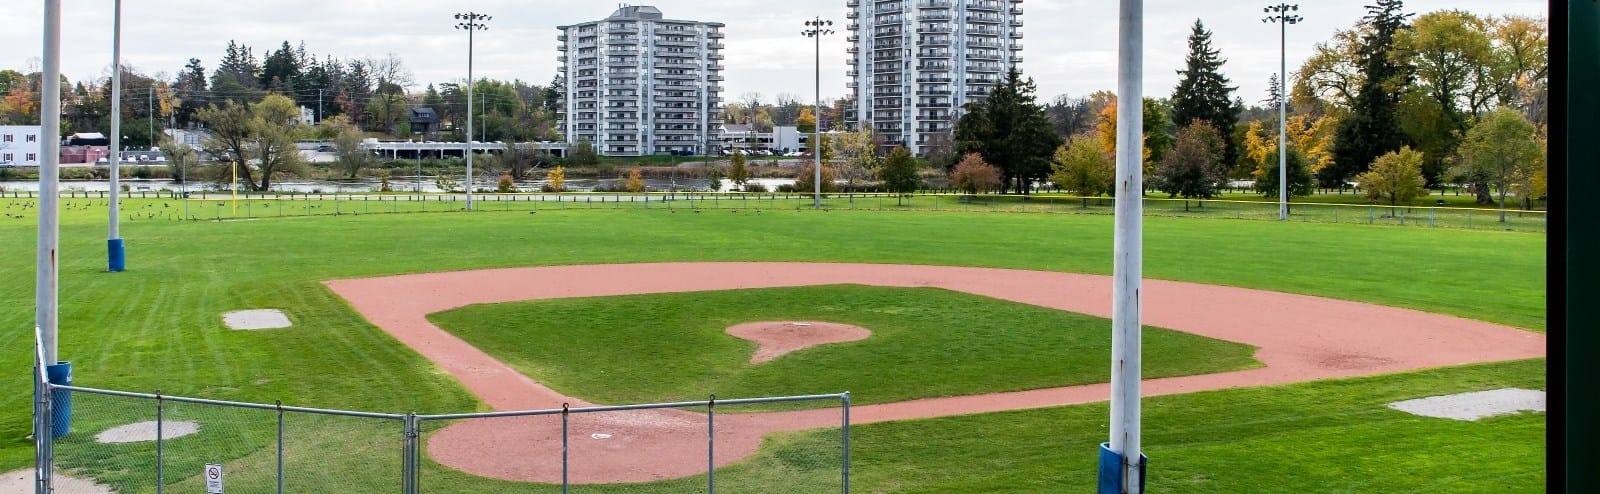 Cambridge sportsfield